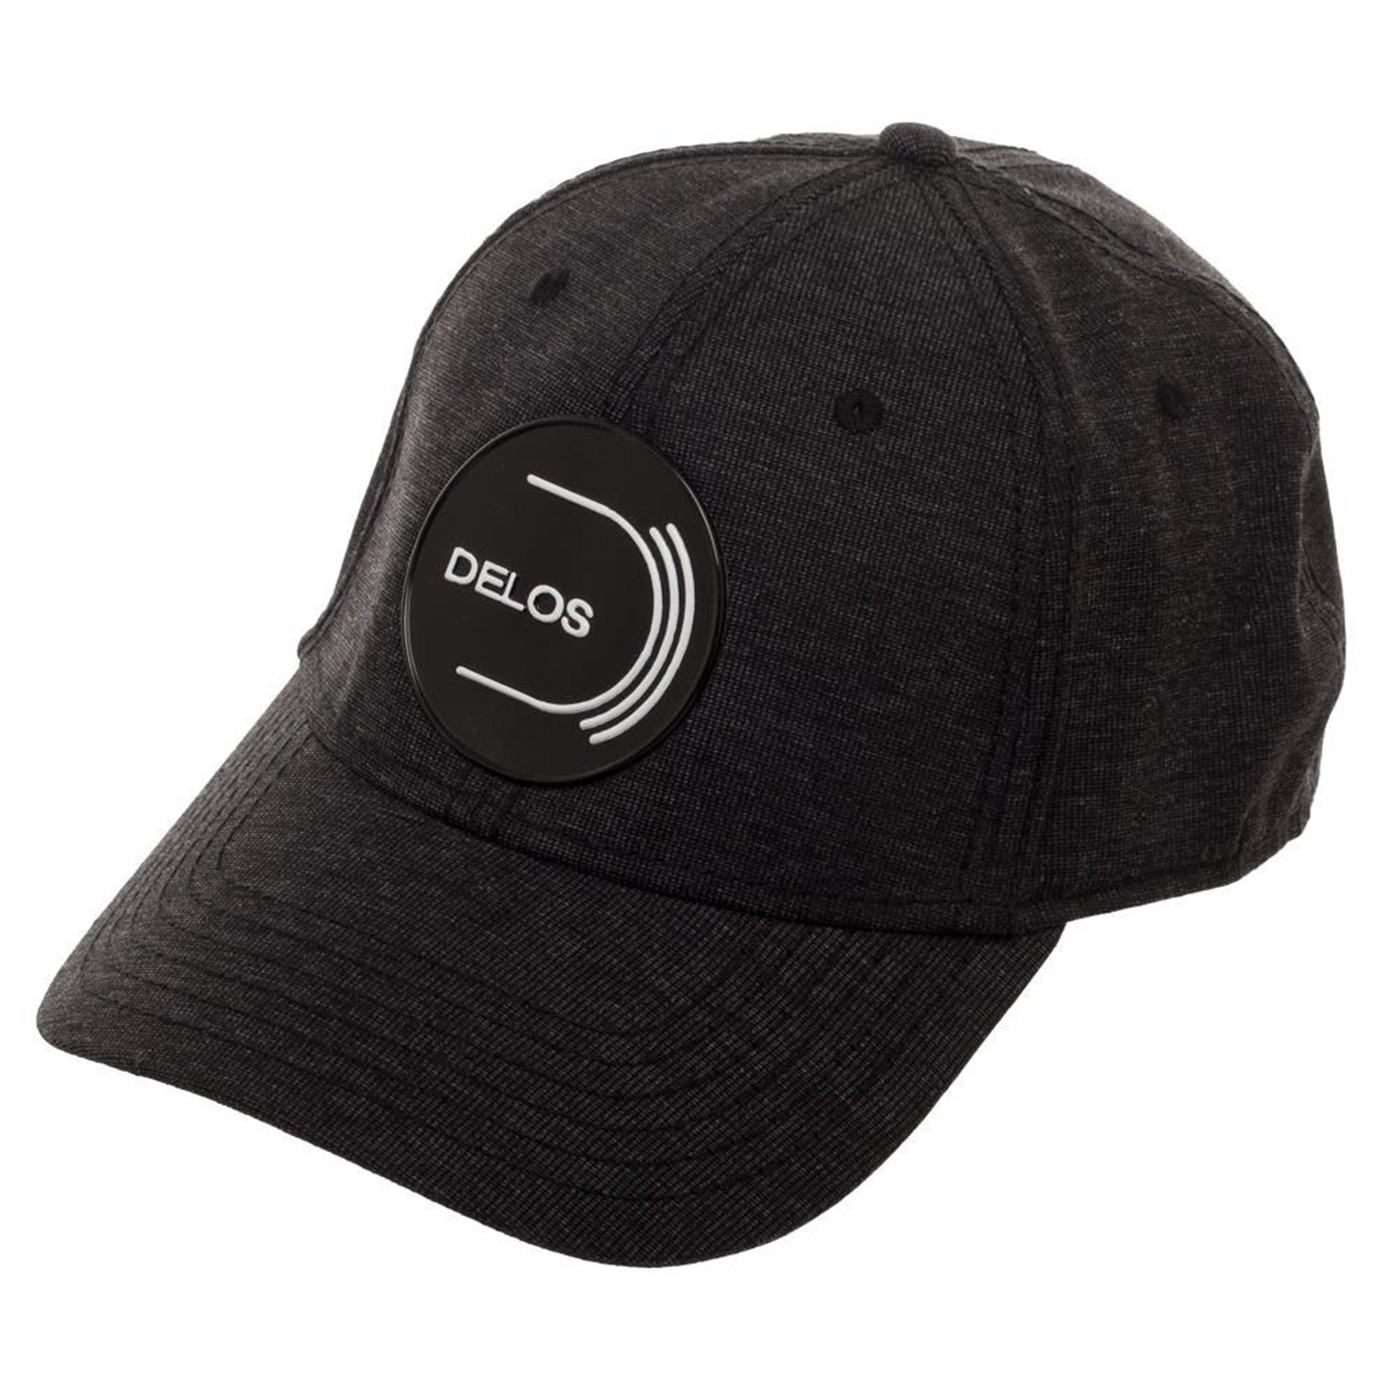 West World Curved Bill Flexible Fit Hat